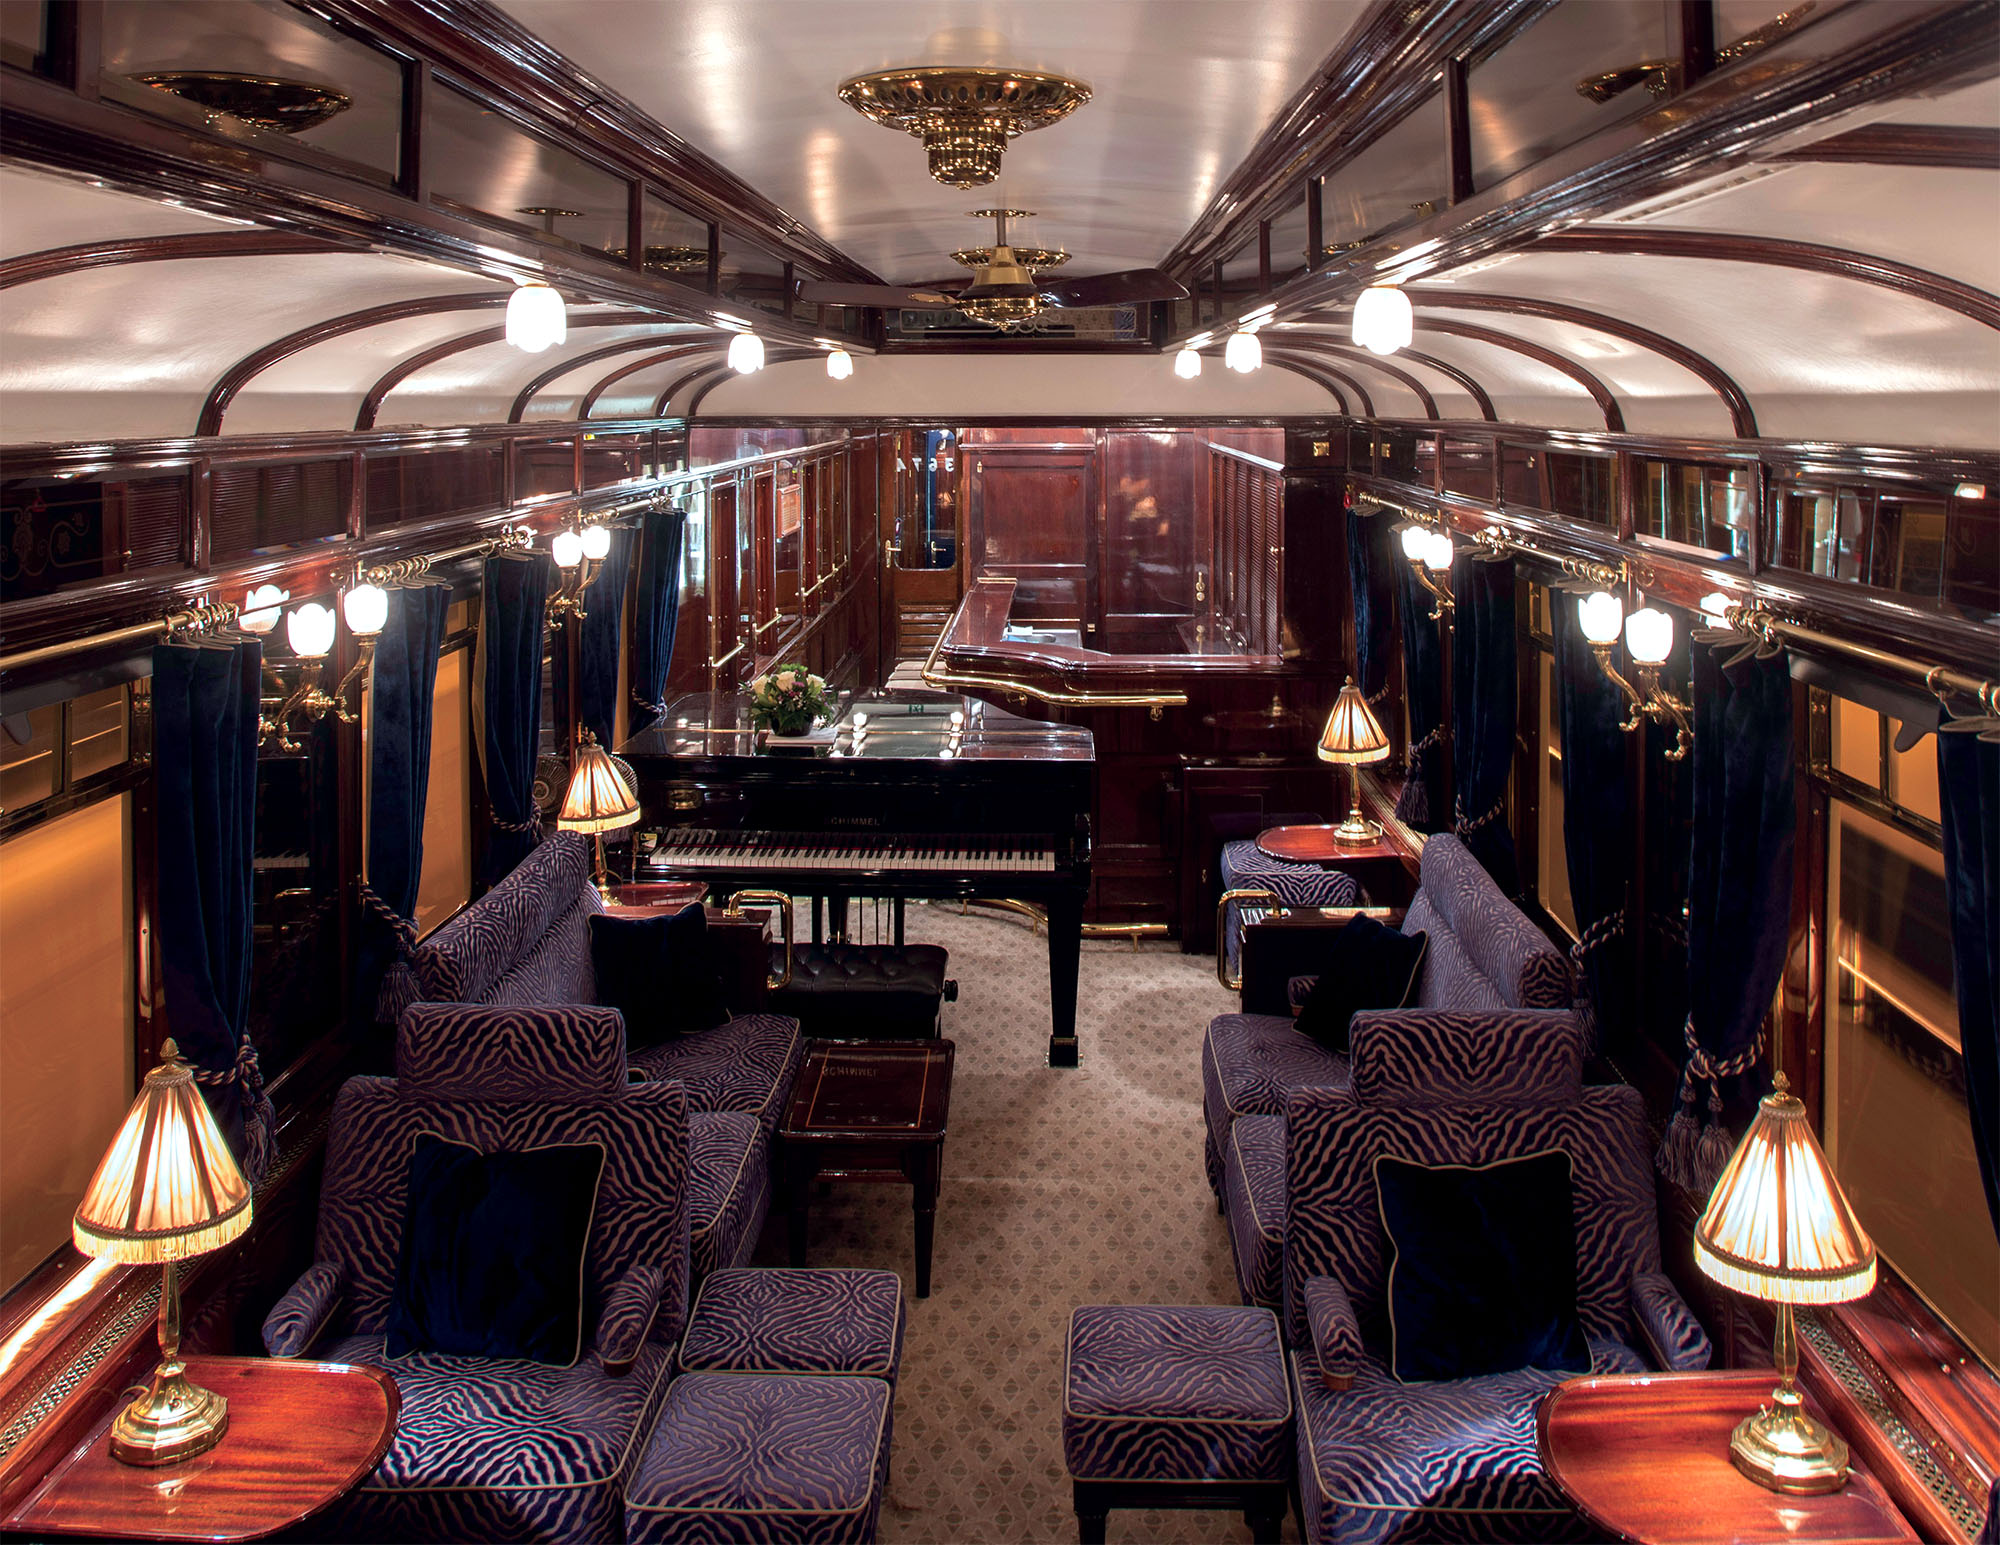 Interior Orient Express train with its couches, piano, side tables and lamps